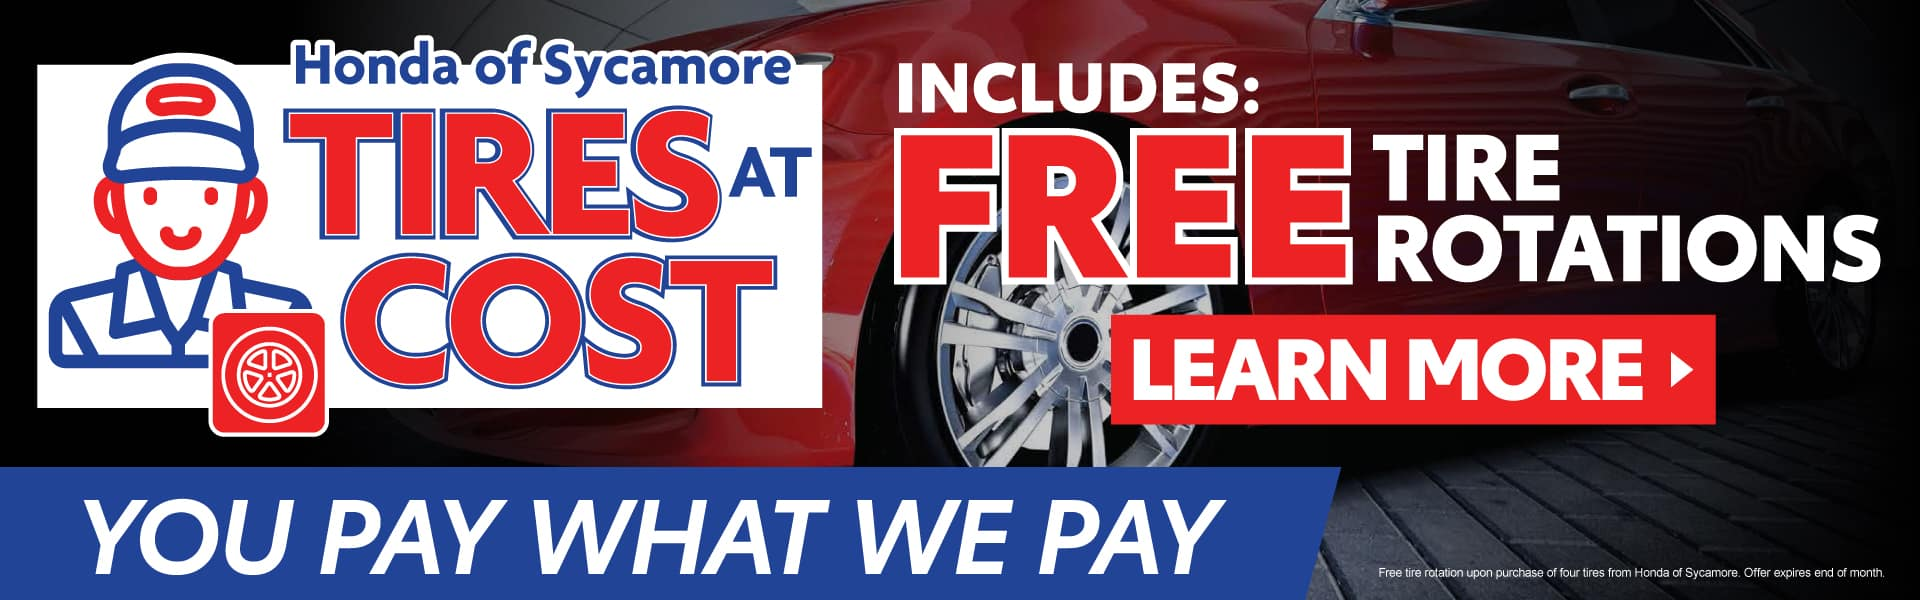 Tires at Cost - Free Tire Rotations - Click to Learn More